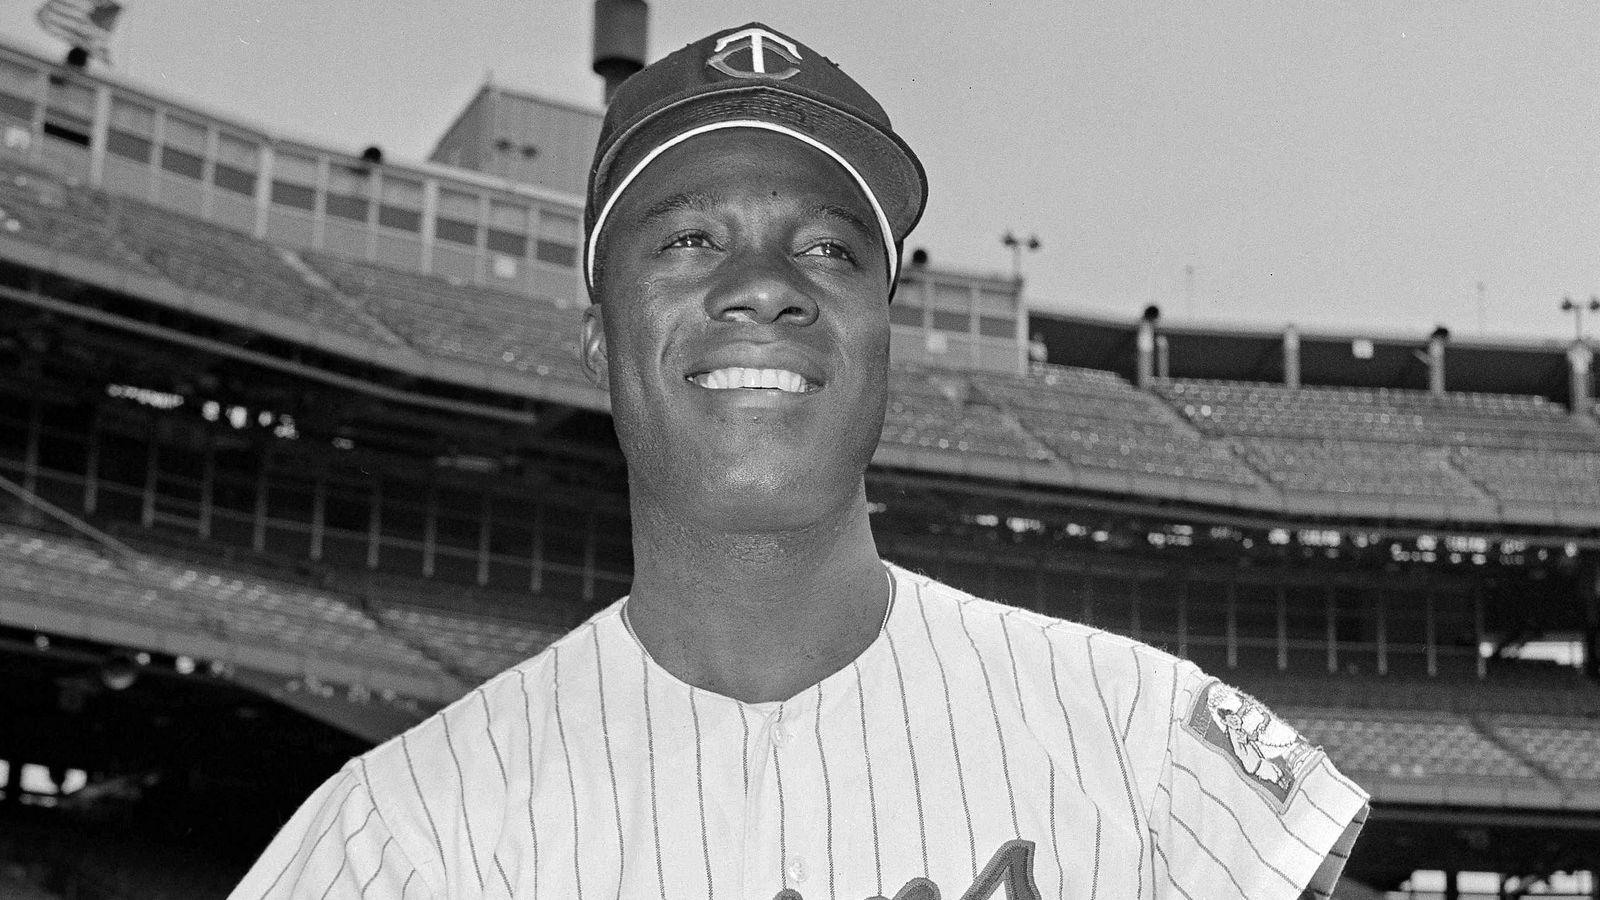 Jim 'Mudcat' Grant, Member of Minnesota Twins First World Series Team and American League's First Black 20-Game Winner, Dies at 85